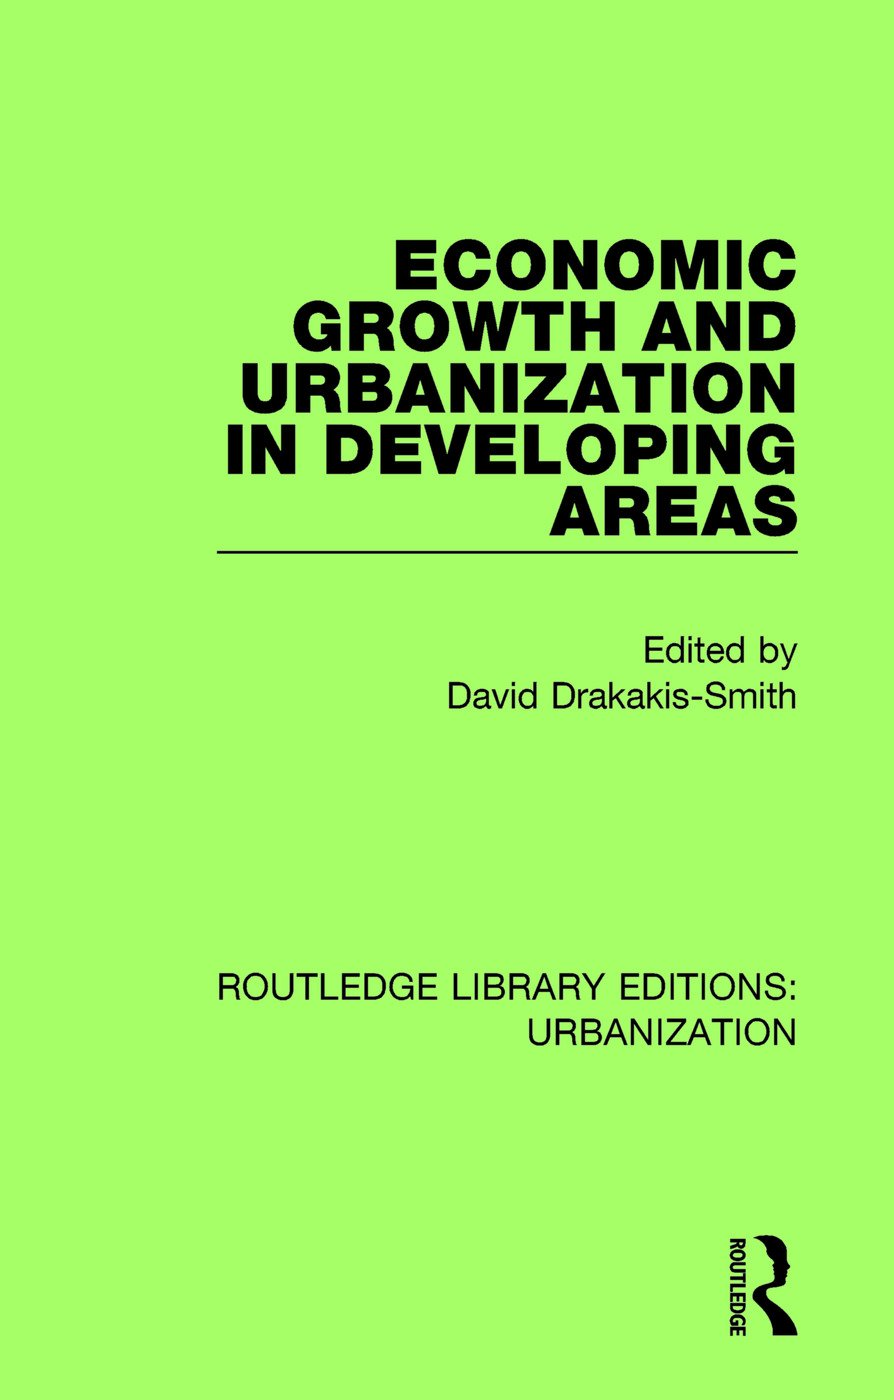 Economic Growth and Urbanization in Developing Areas book cover